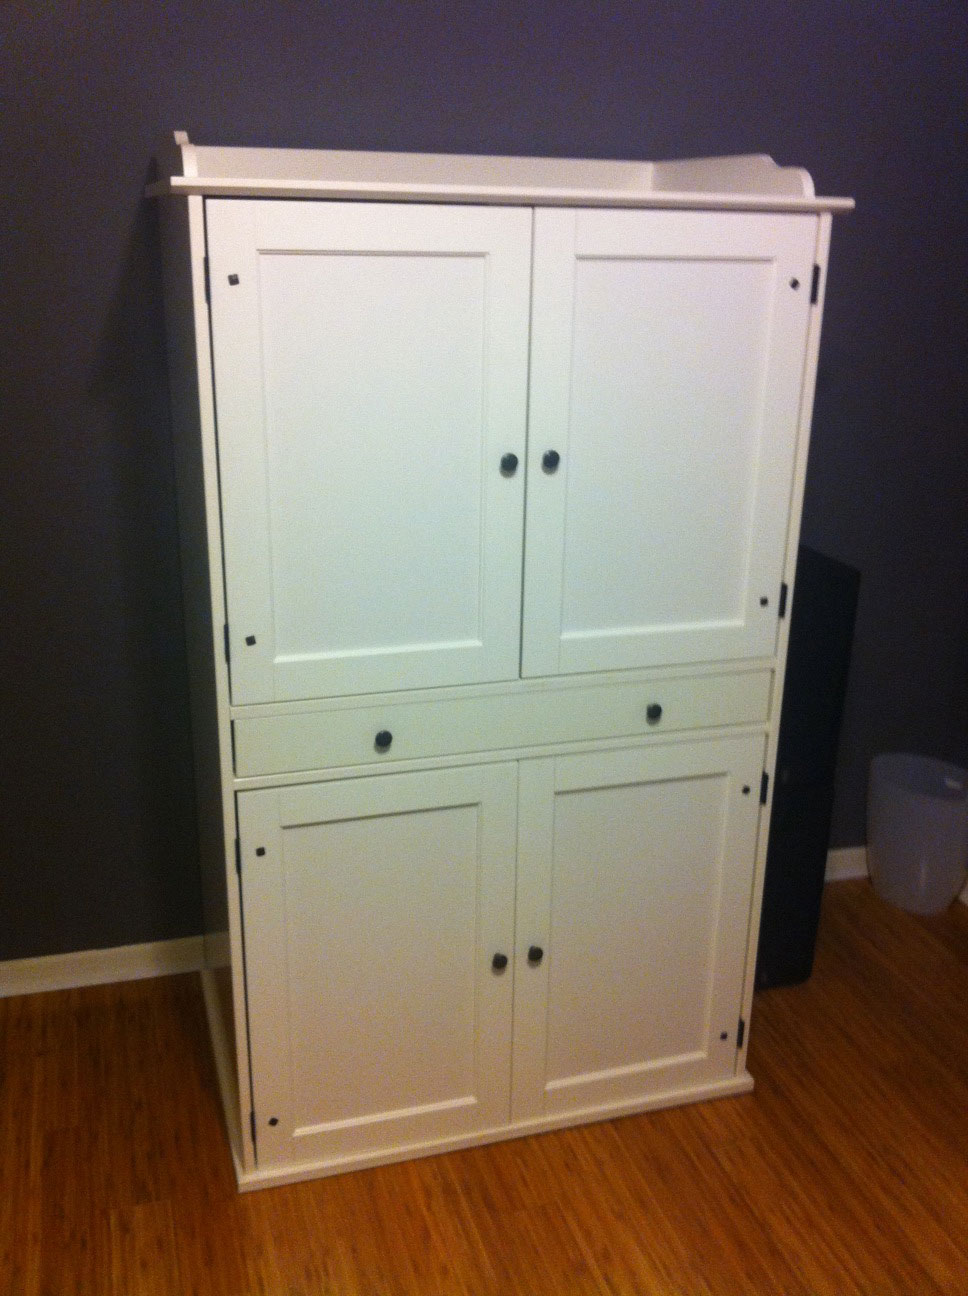 for sale ikea johan desk egarage sale. Black Bedroom Furniture Sets. Home Design Ideas